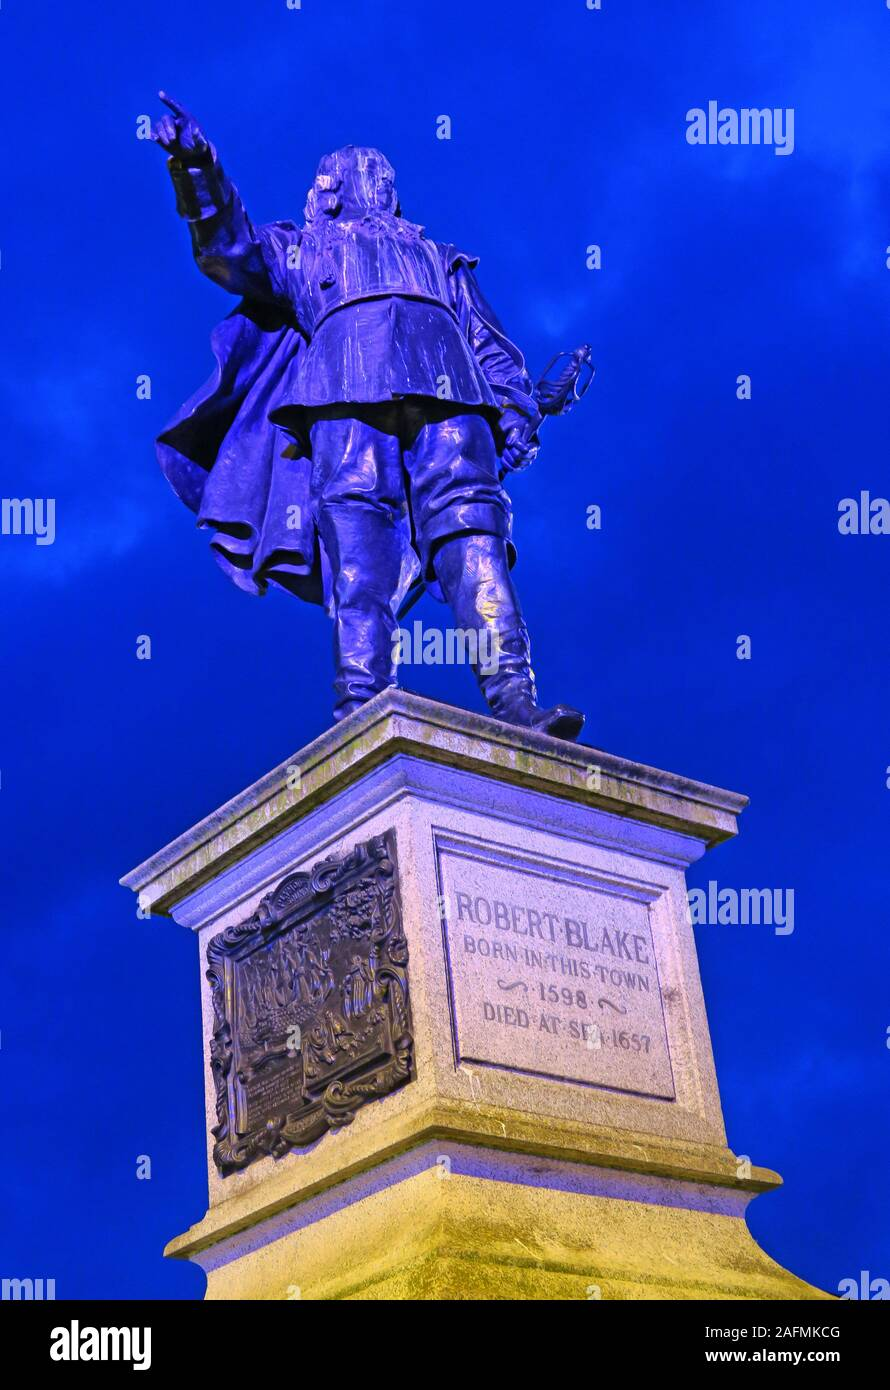 HotpixUK,@HotpixUK,GoTonySmith,Somerset,SDC,Sedgemoor,Sedgemoor District Council,South West England,England,UK,South West,town,TA6,dusk,night,night time,sculpture,at dusk,at night,town centre,for Bridgwater,Lord Warden of the Cinque Ports,1205747,ST2937SE CORNHILL 736-1/10/45 Blake Statue 24/03/50,pointing,to toward Christ Church Unitarian Chapel in Dampiet Street,a finger,plinth,Robert Blake born in this town 1598 died at sea